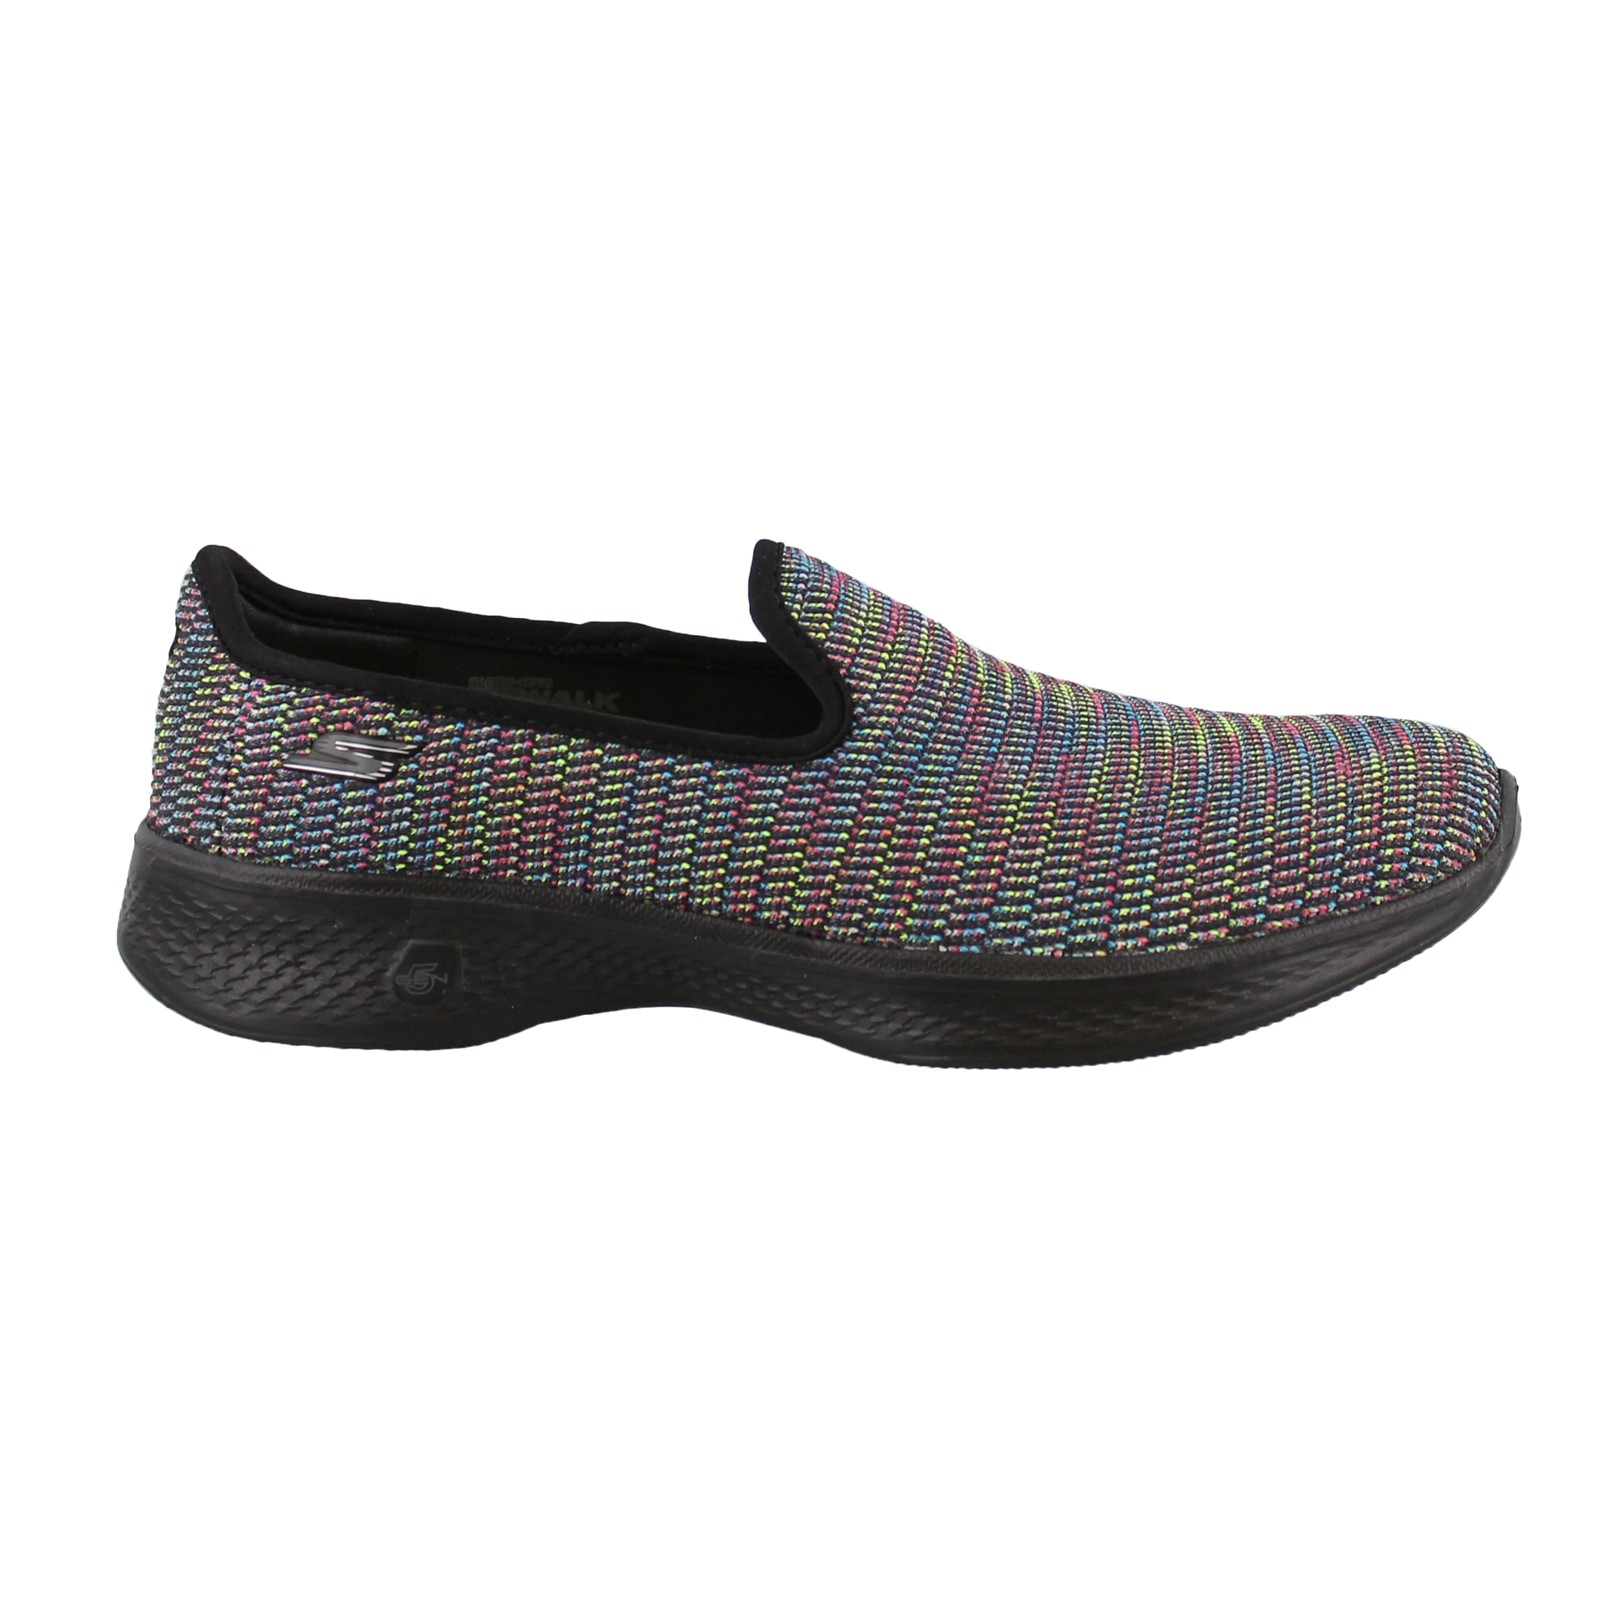 Women's Skechers Performance, Go Walk 4 Select Slip on Walking Shoes